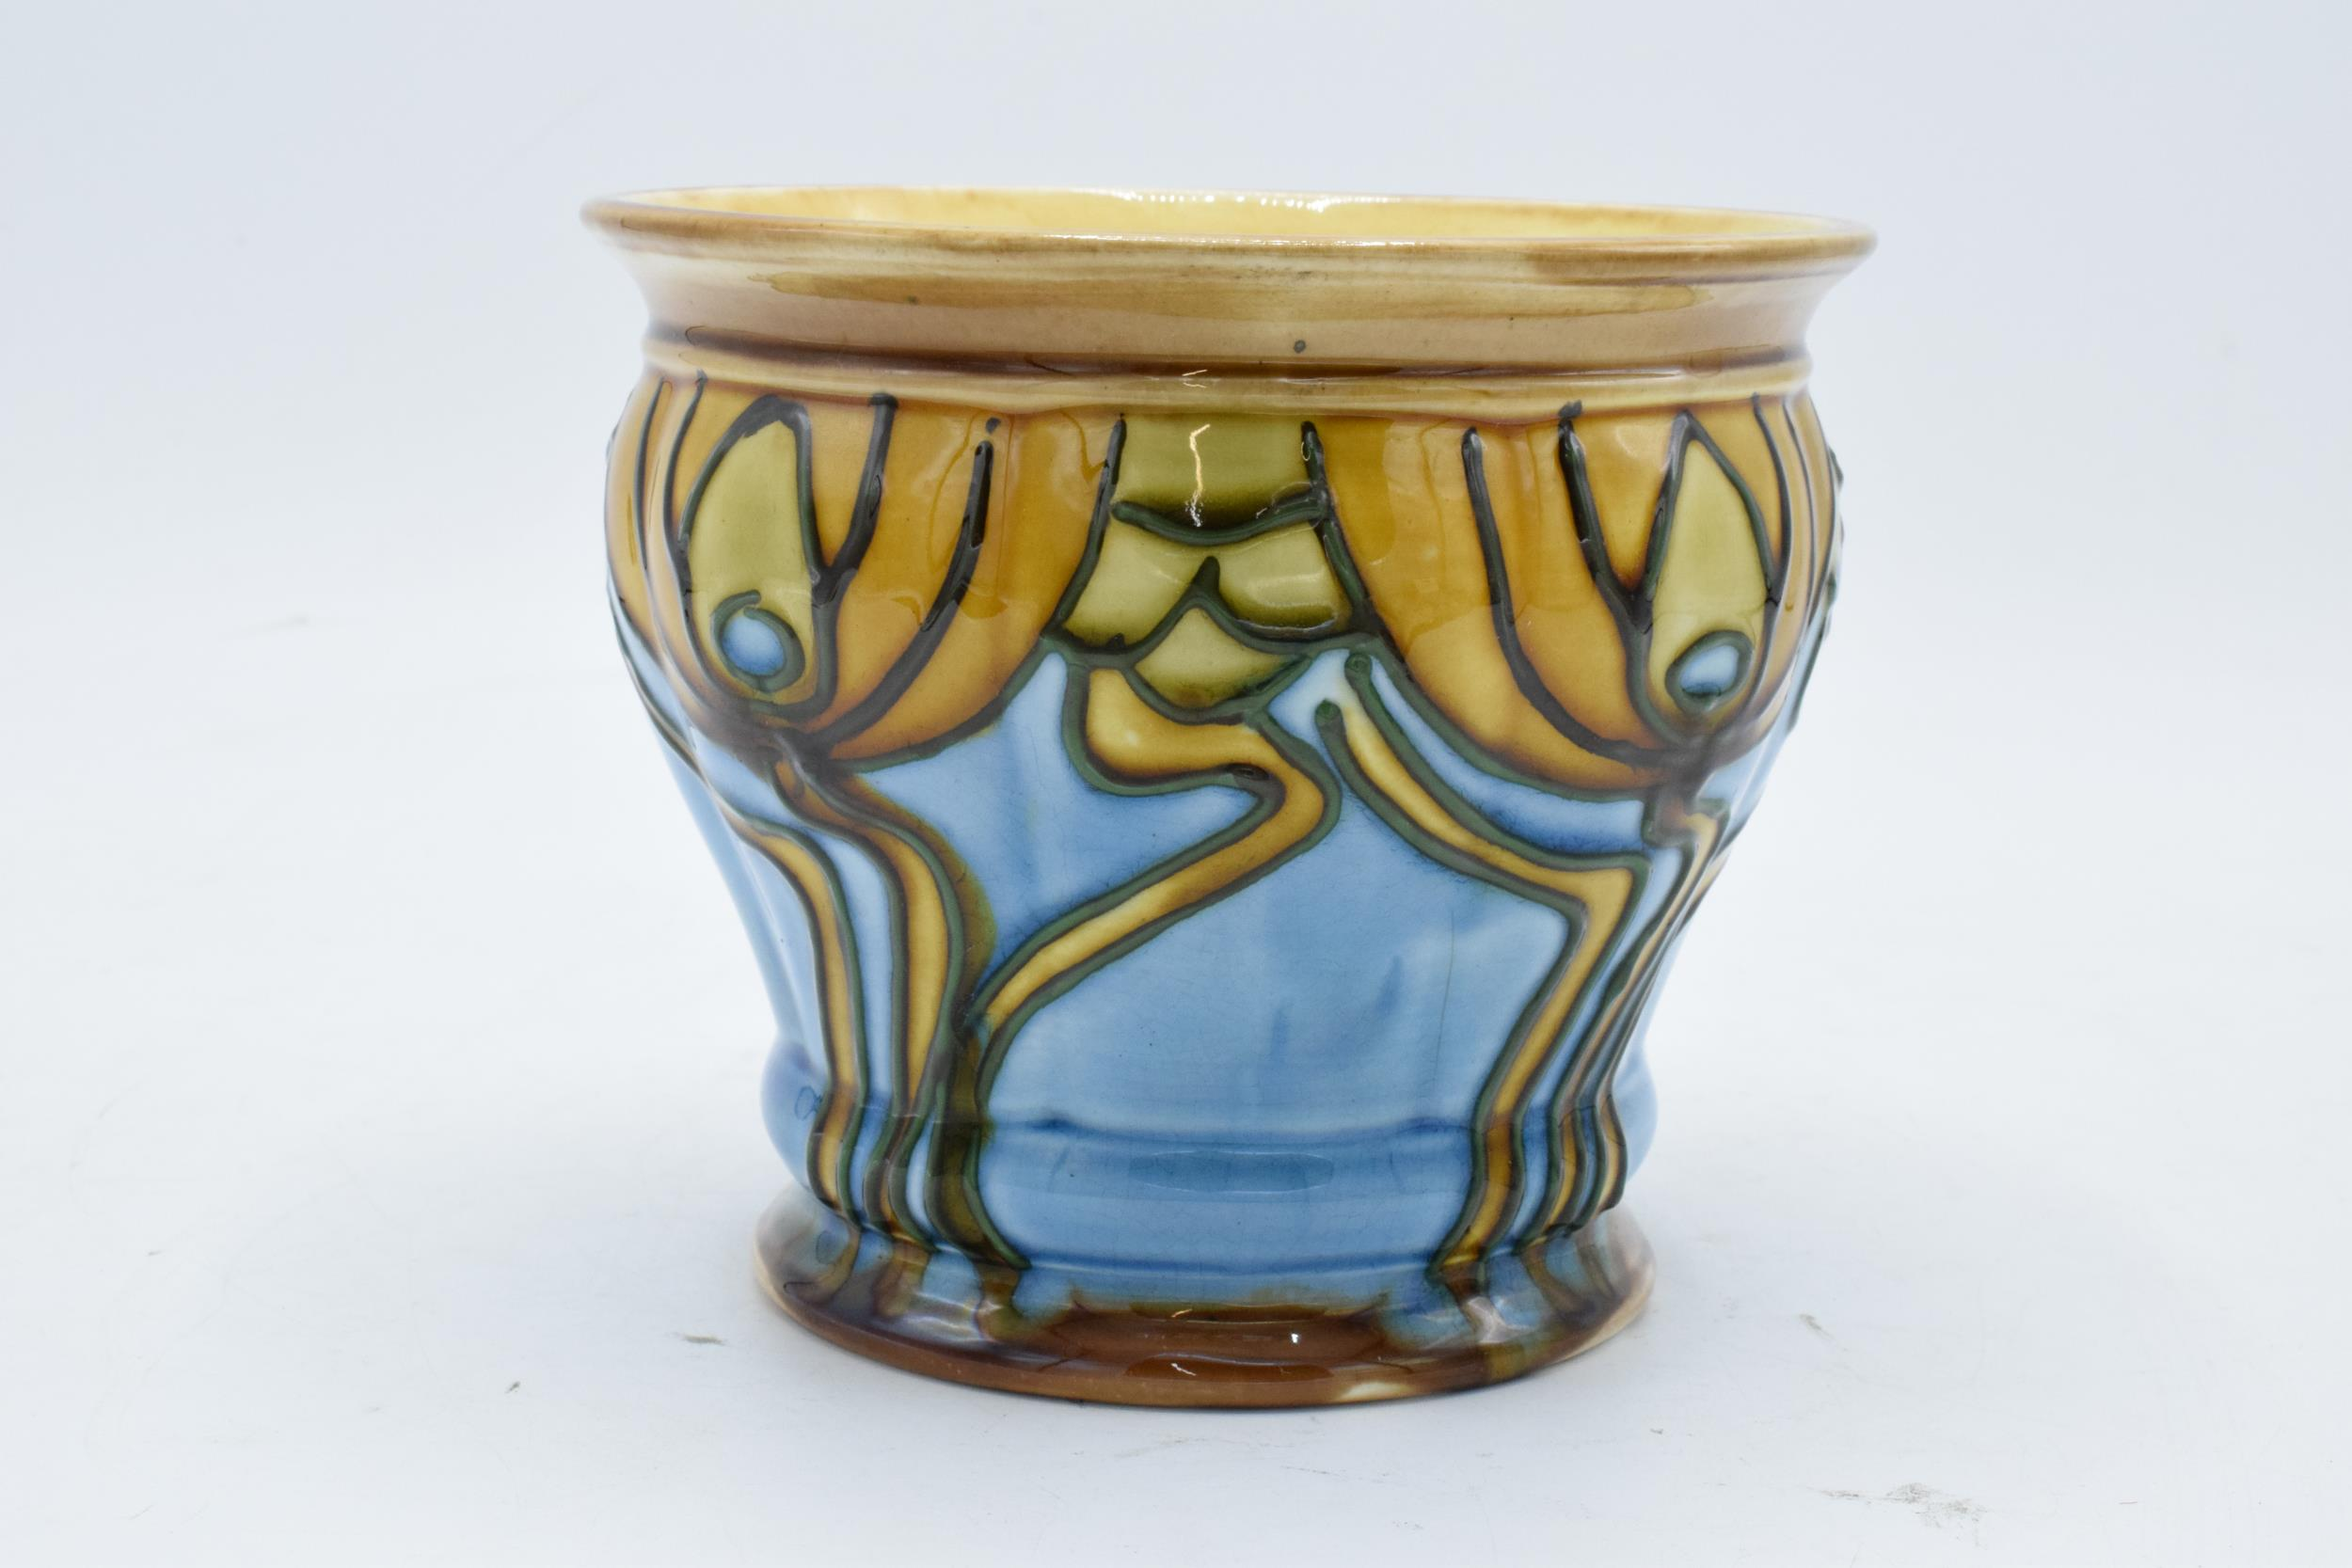 Minton Secessionist Jardinière with a stylised design 'No. 9'. 11cm tall. 12.5 diameter. Condition